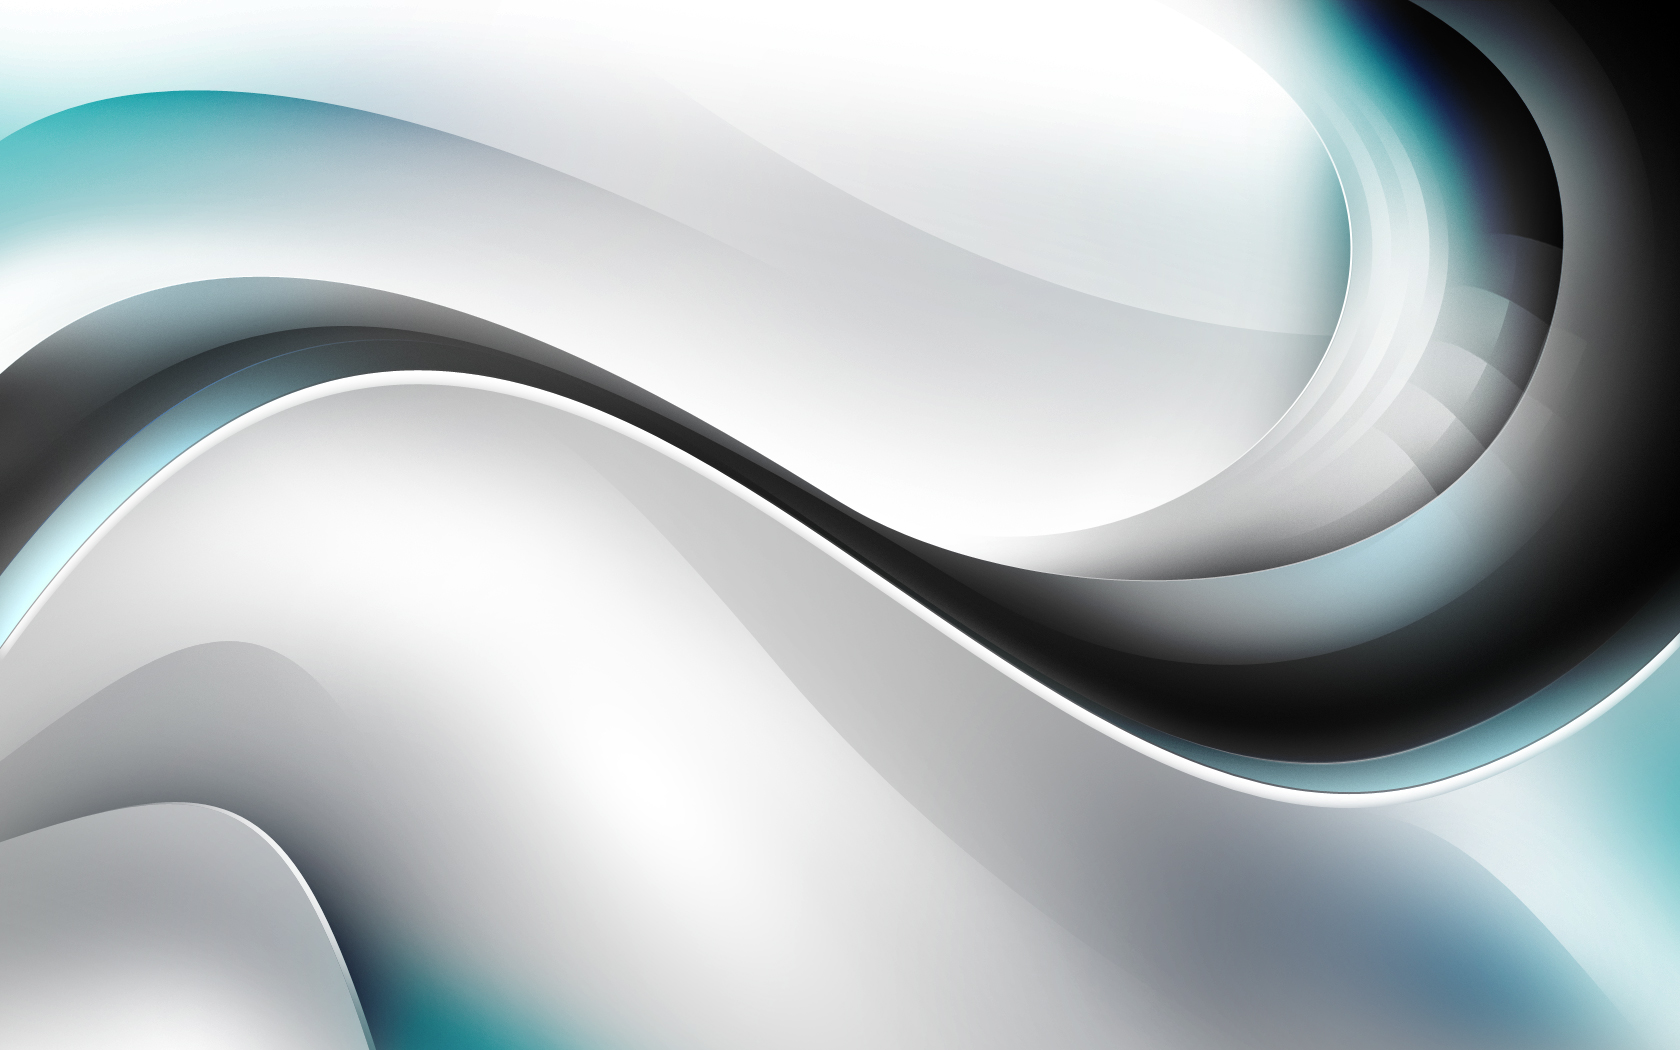 Abstract - White  Colors Shapes Patterns Shades Texture CGI Artistic Abstract Wallpaper